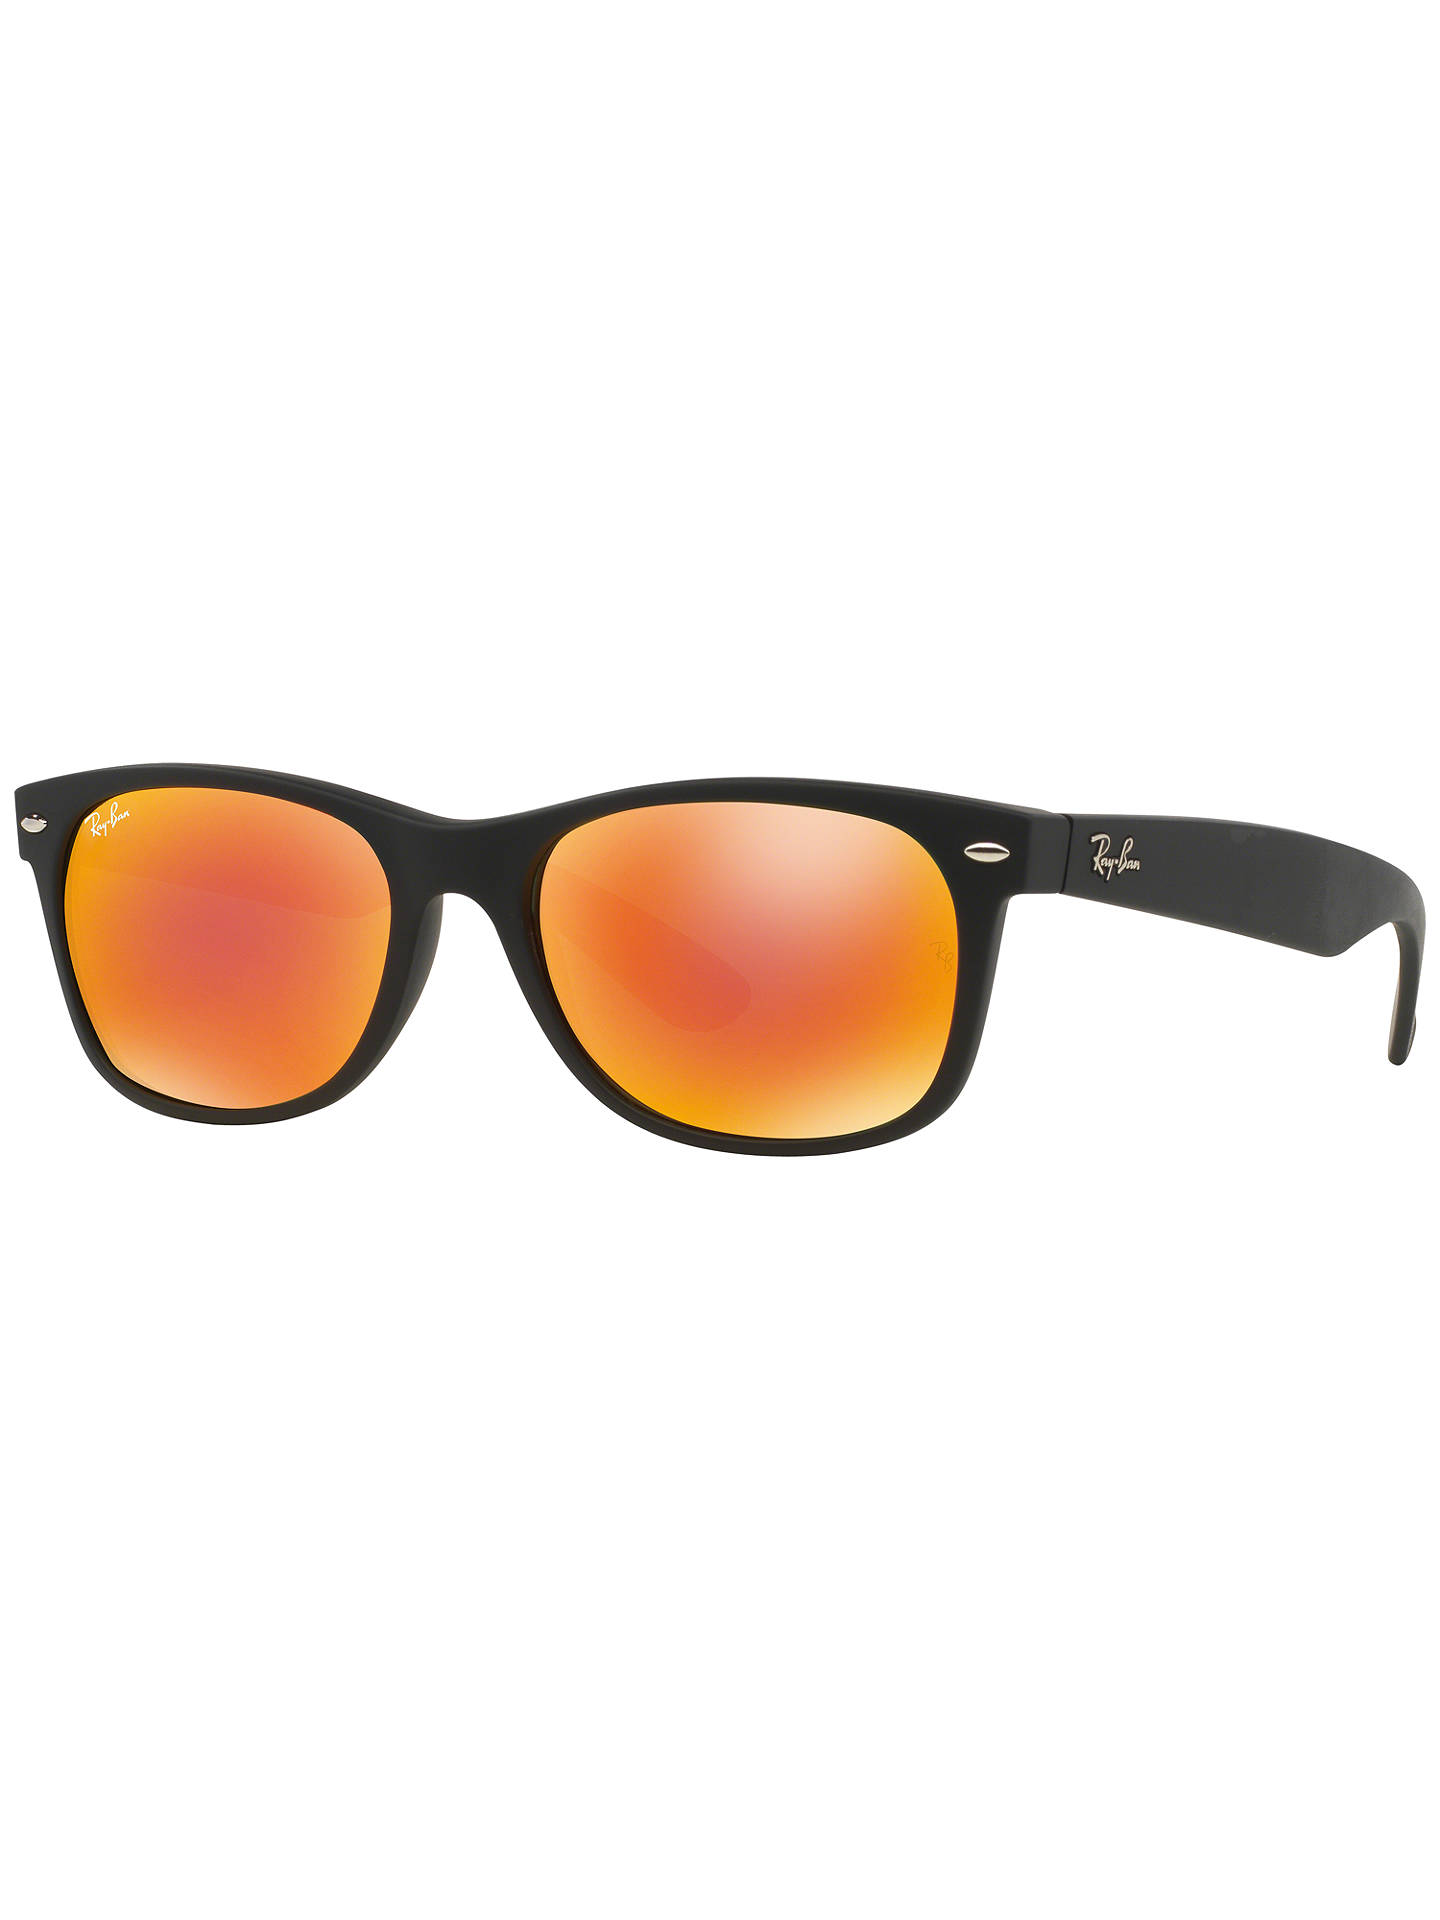 BuyRay-Ban RB2132 New Wayfarer Sunglasses, Matte Black/Mirror Orange Online at johnlewis.com